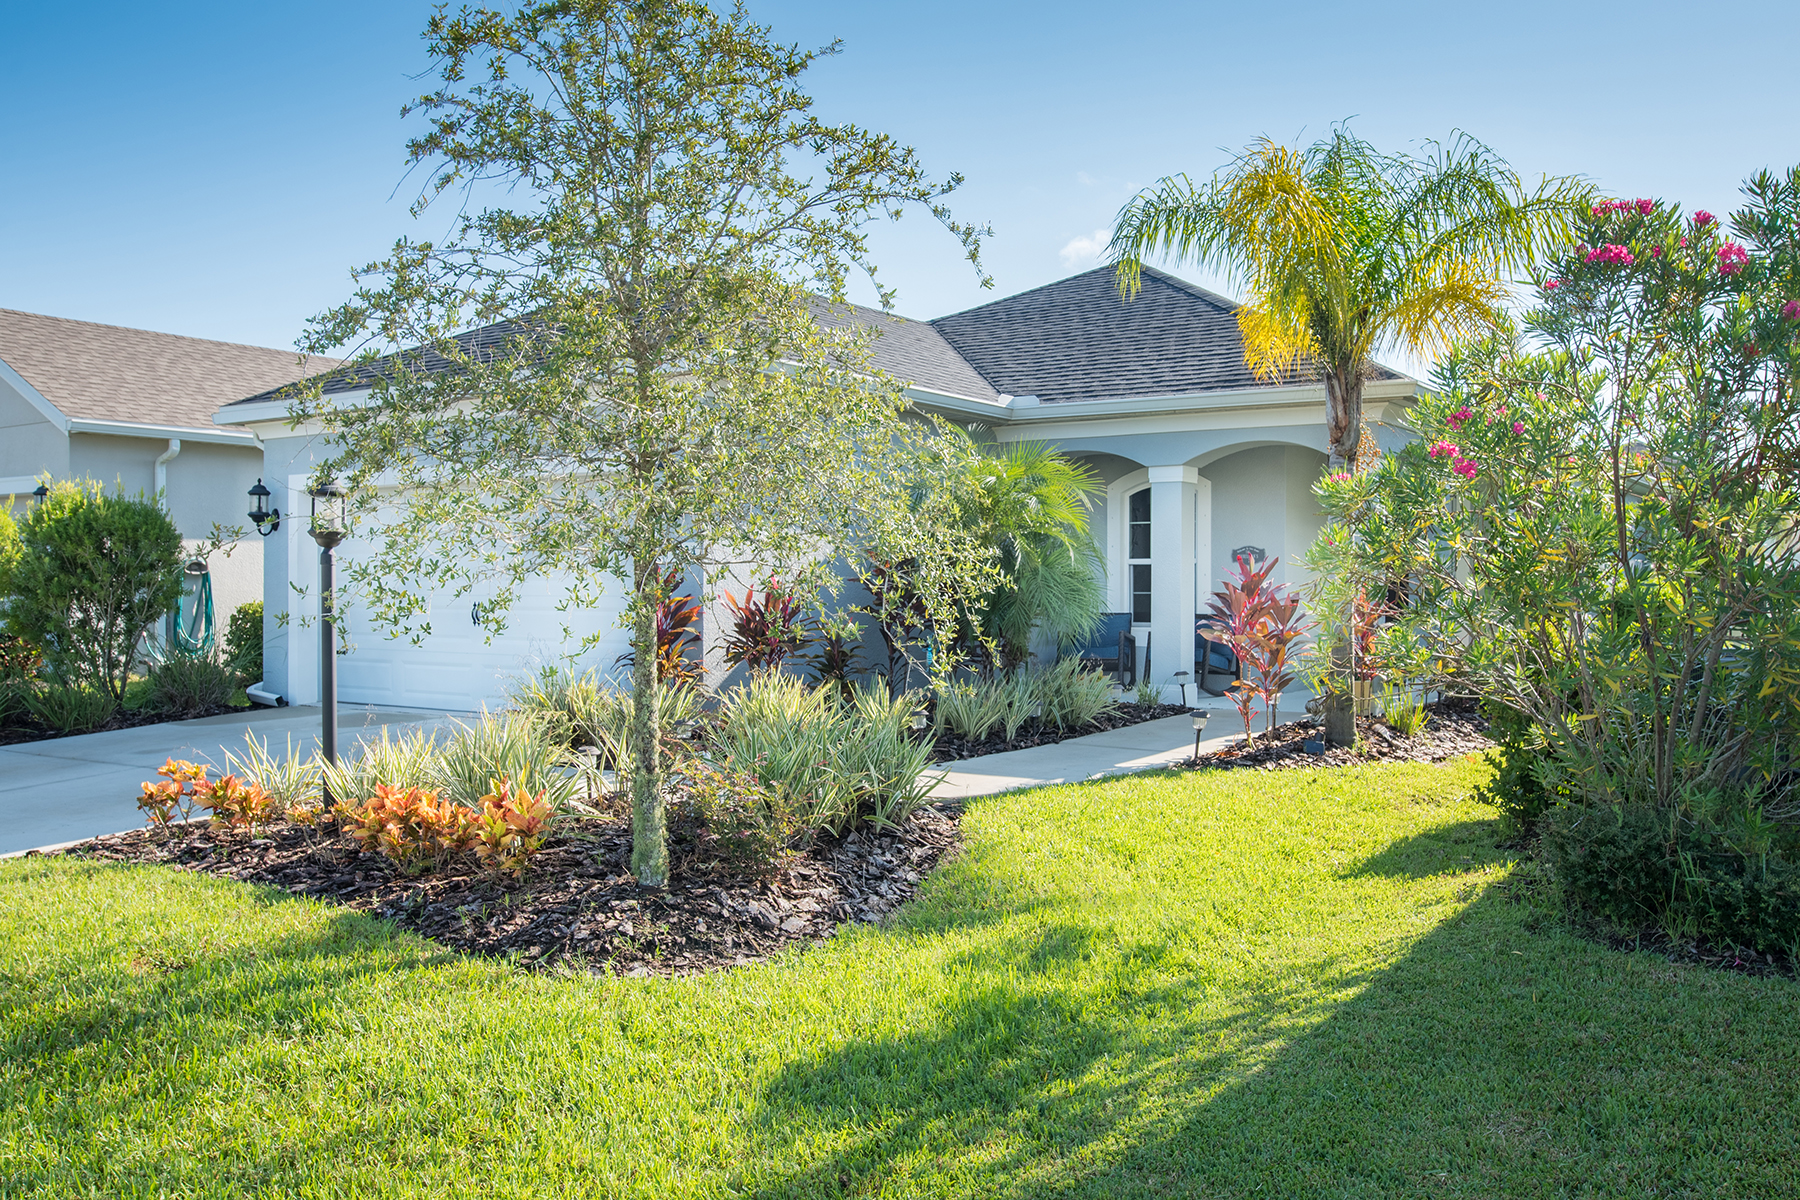 Single Family Homes for Sale at SILVERLEAF 4324 Magnolia Blossom Dr Parrish, Florida 34219 United States